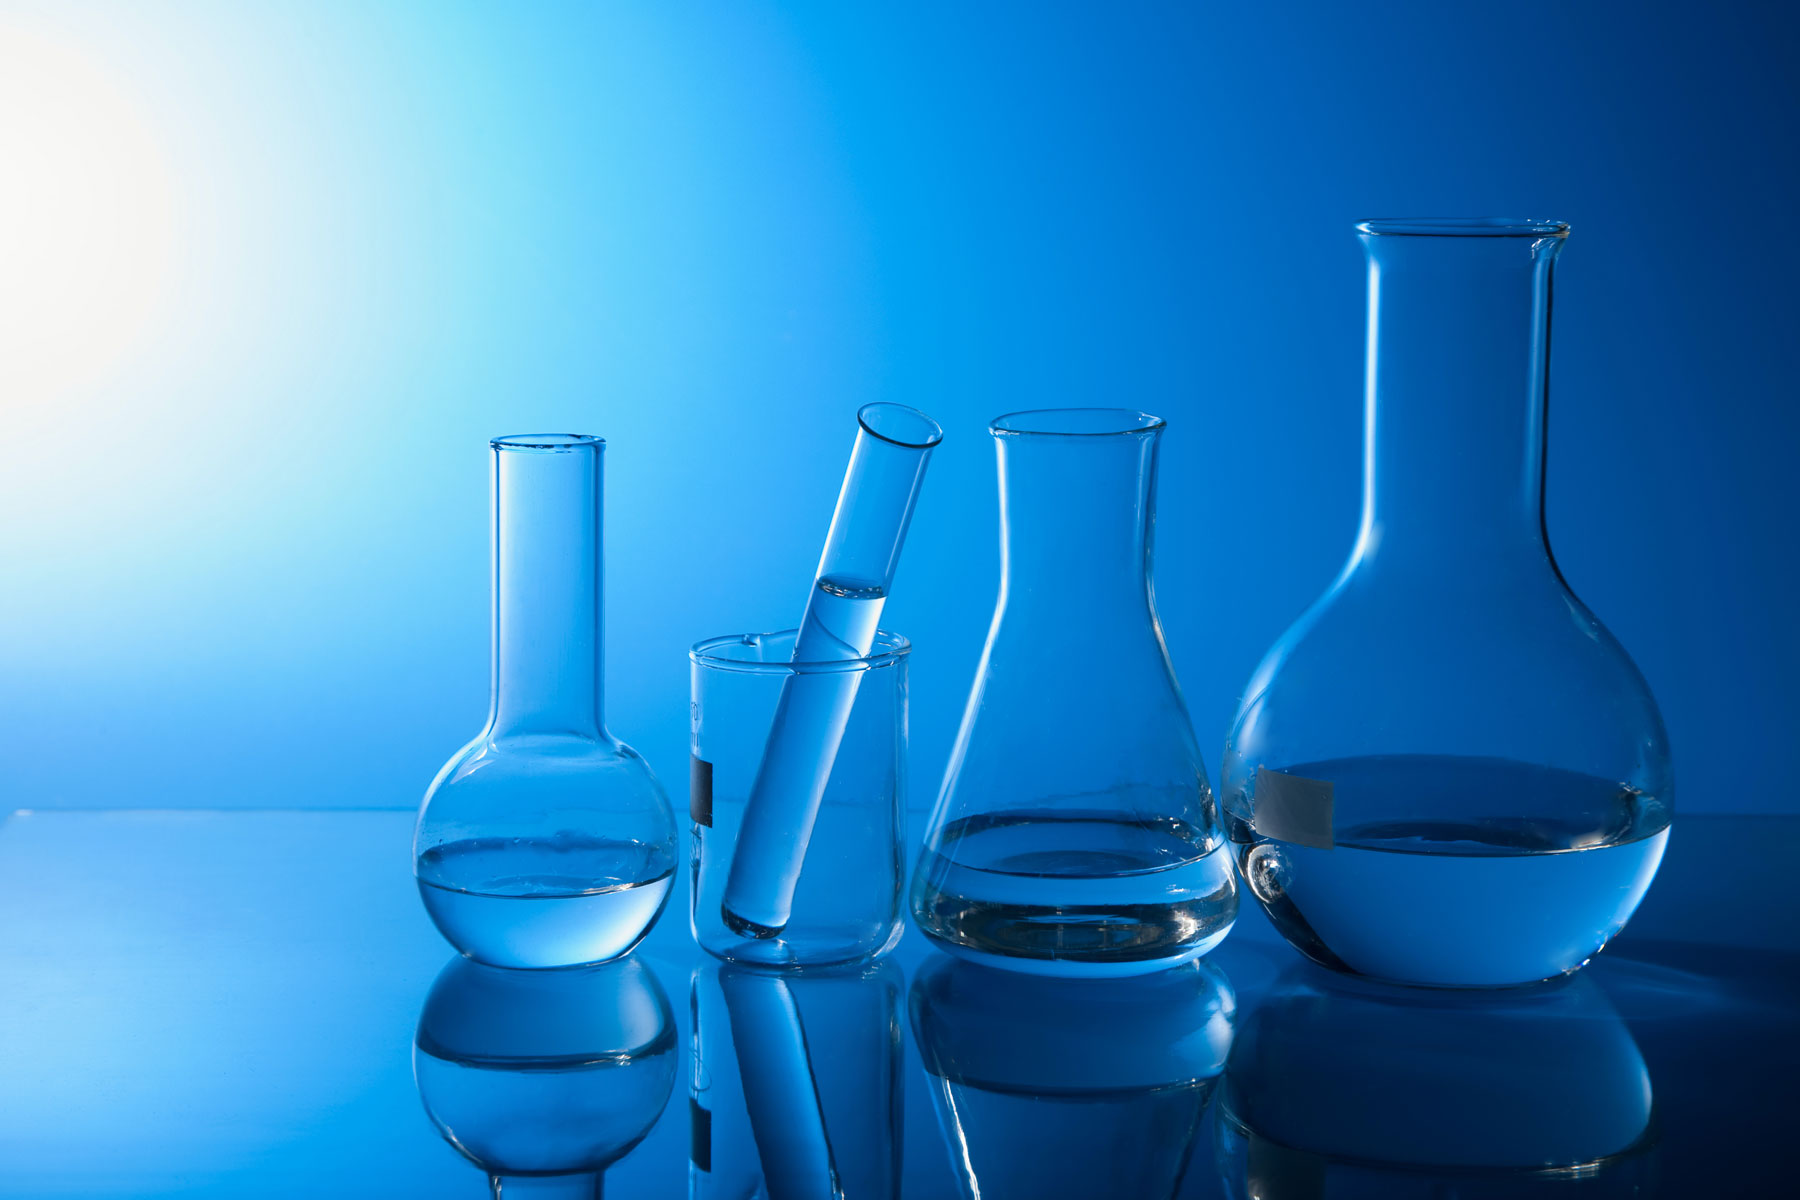 Chemical Laboratory Wallpaper Google Images